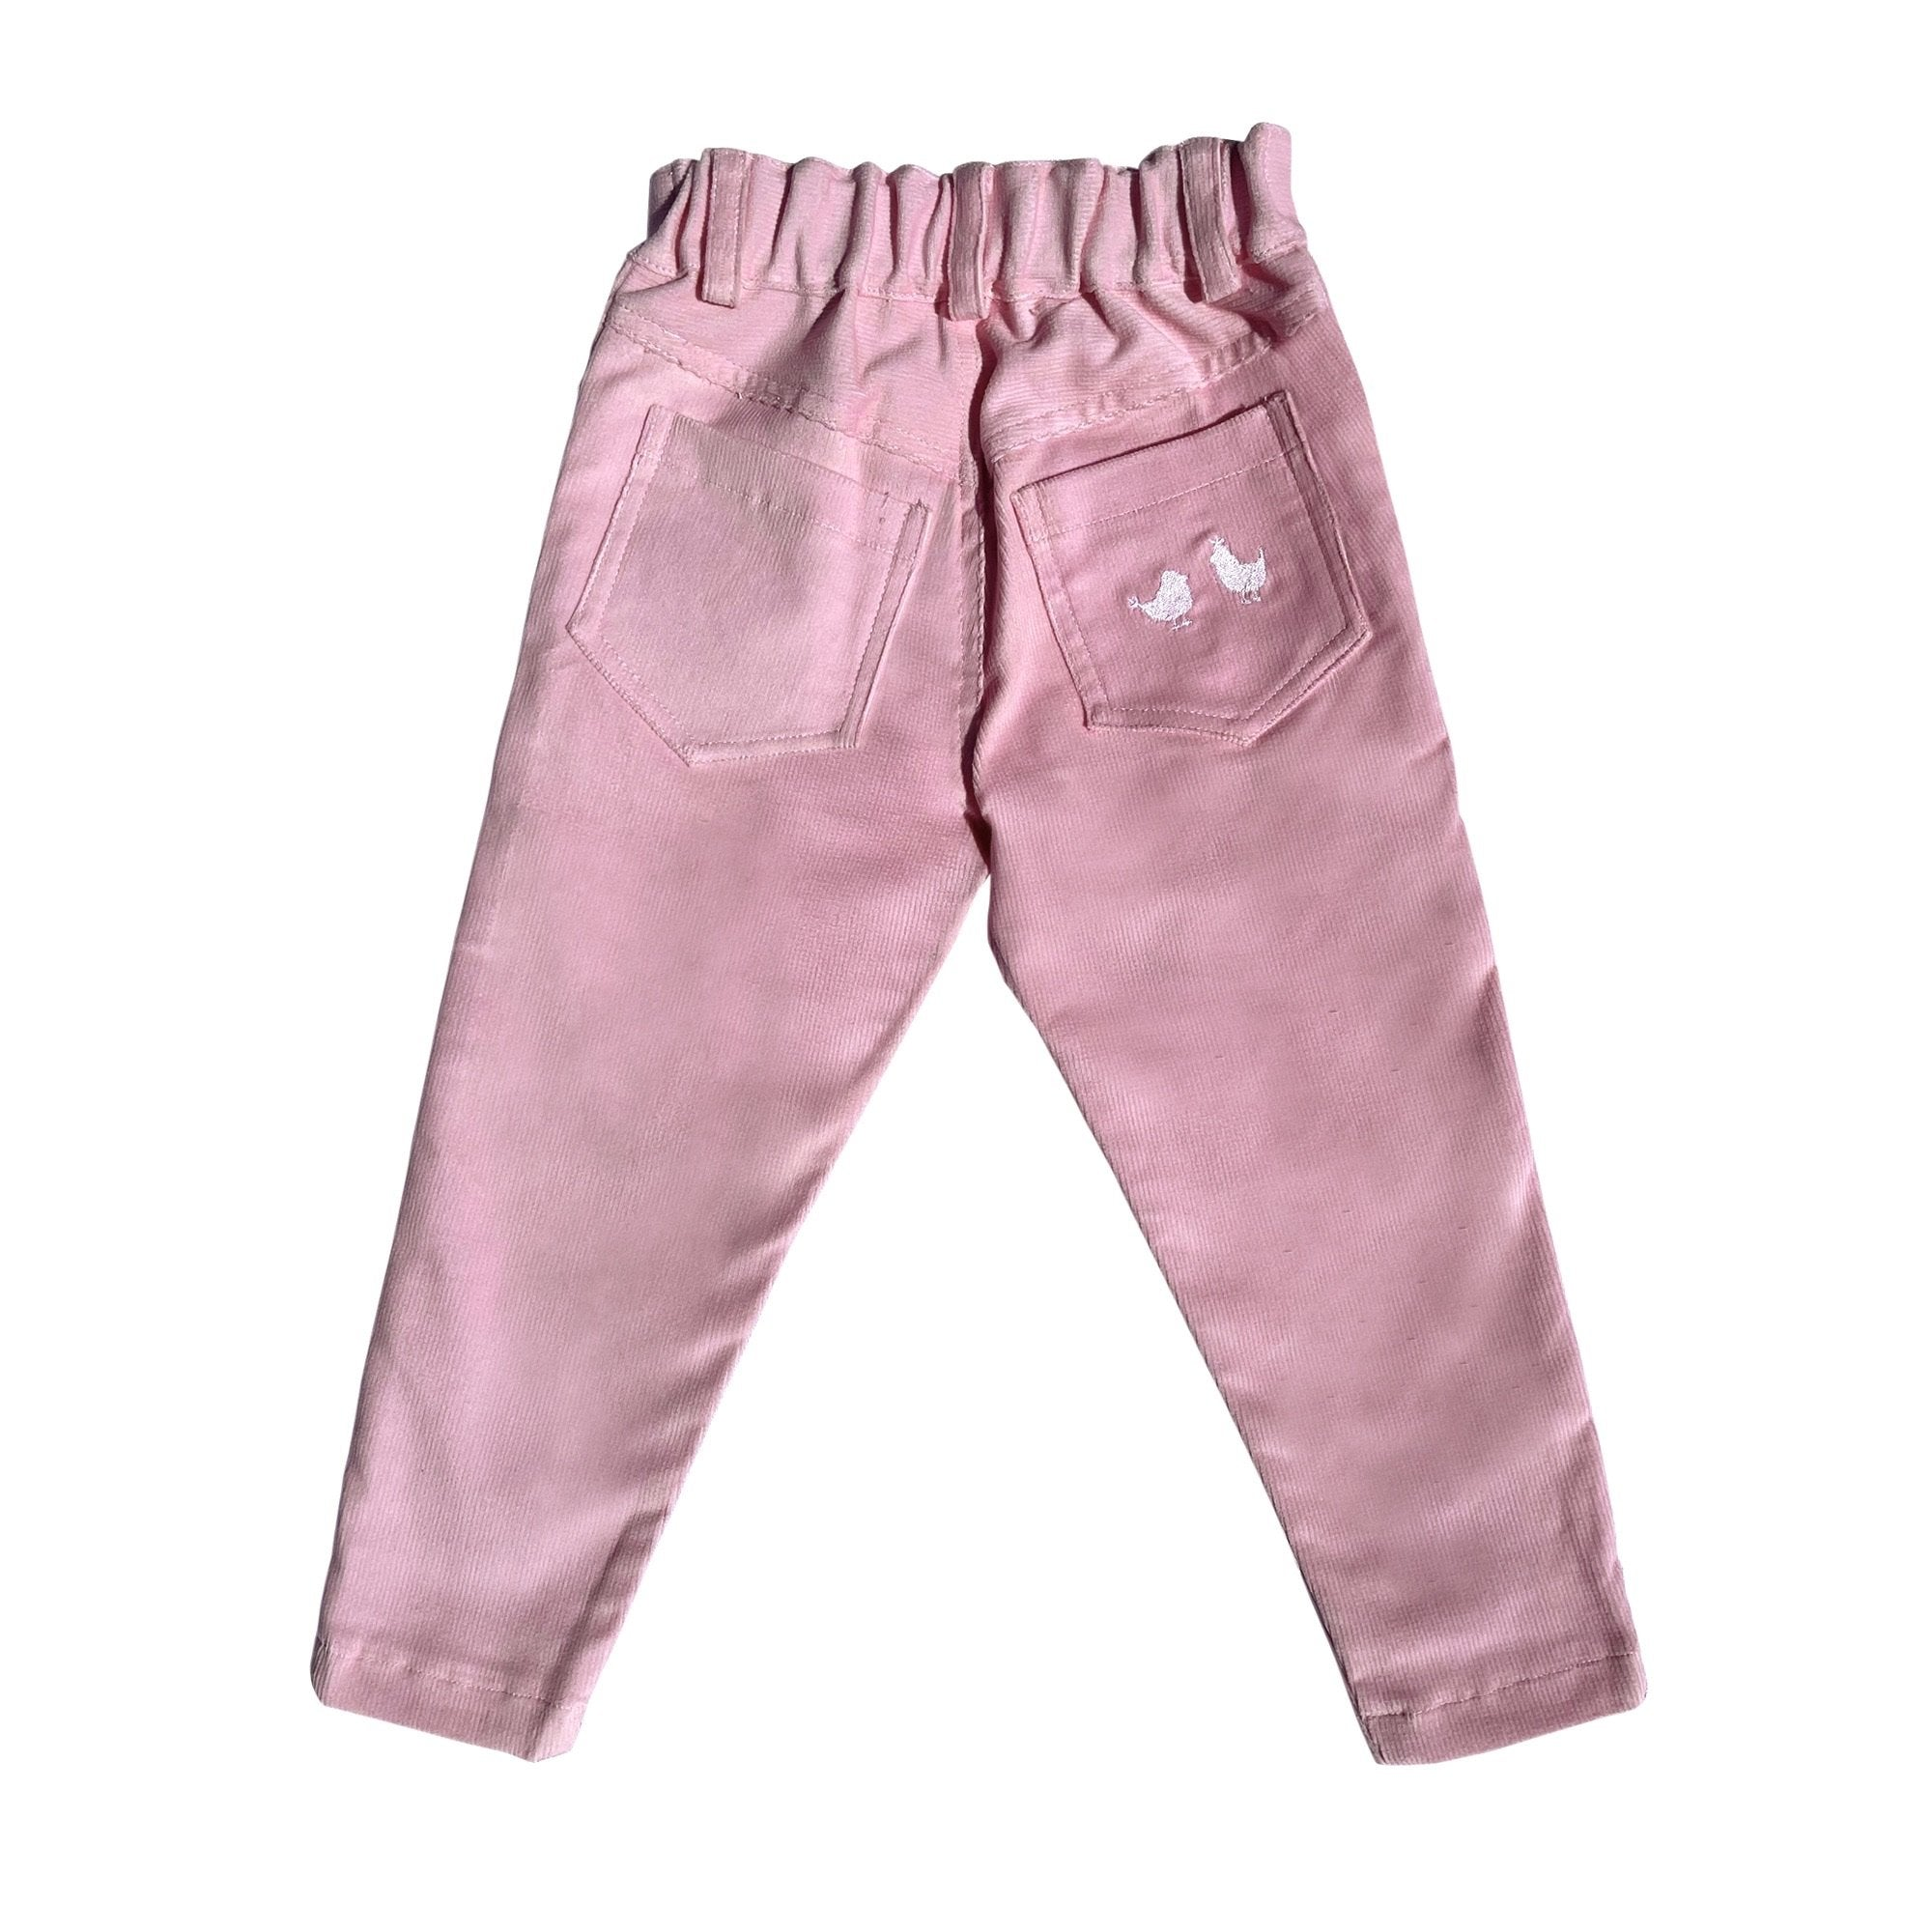 CORDUROY PANTS IN PINK